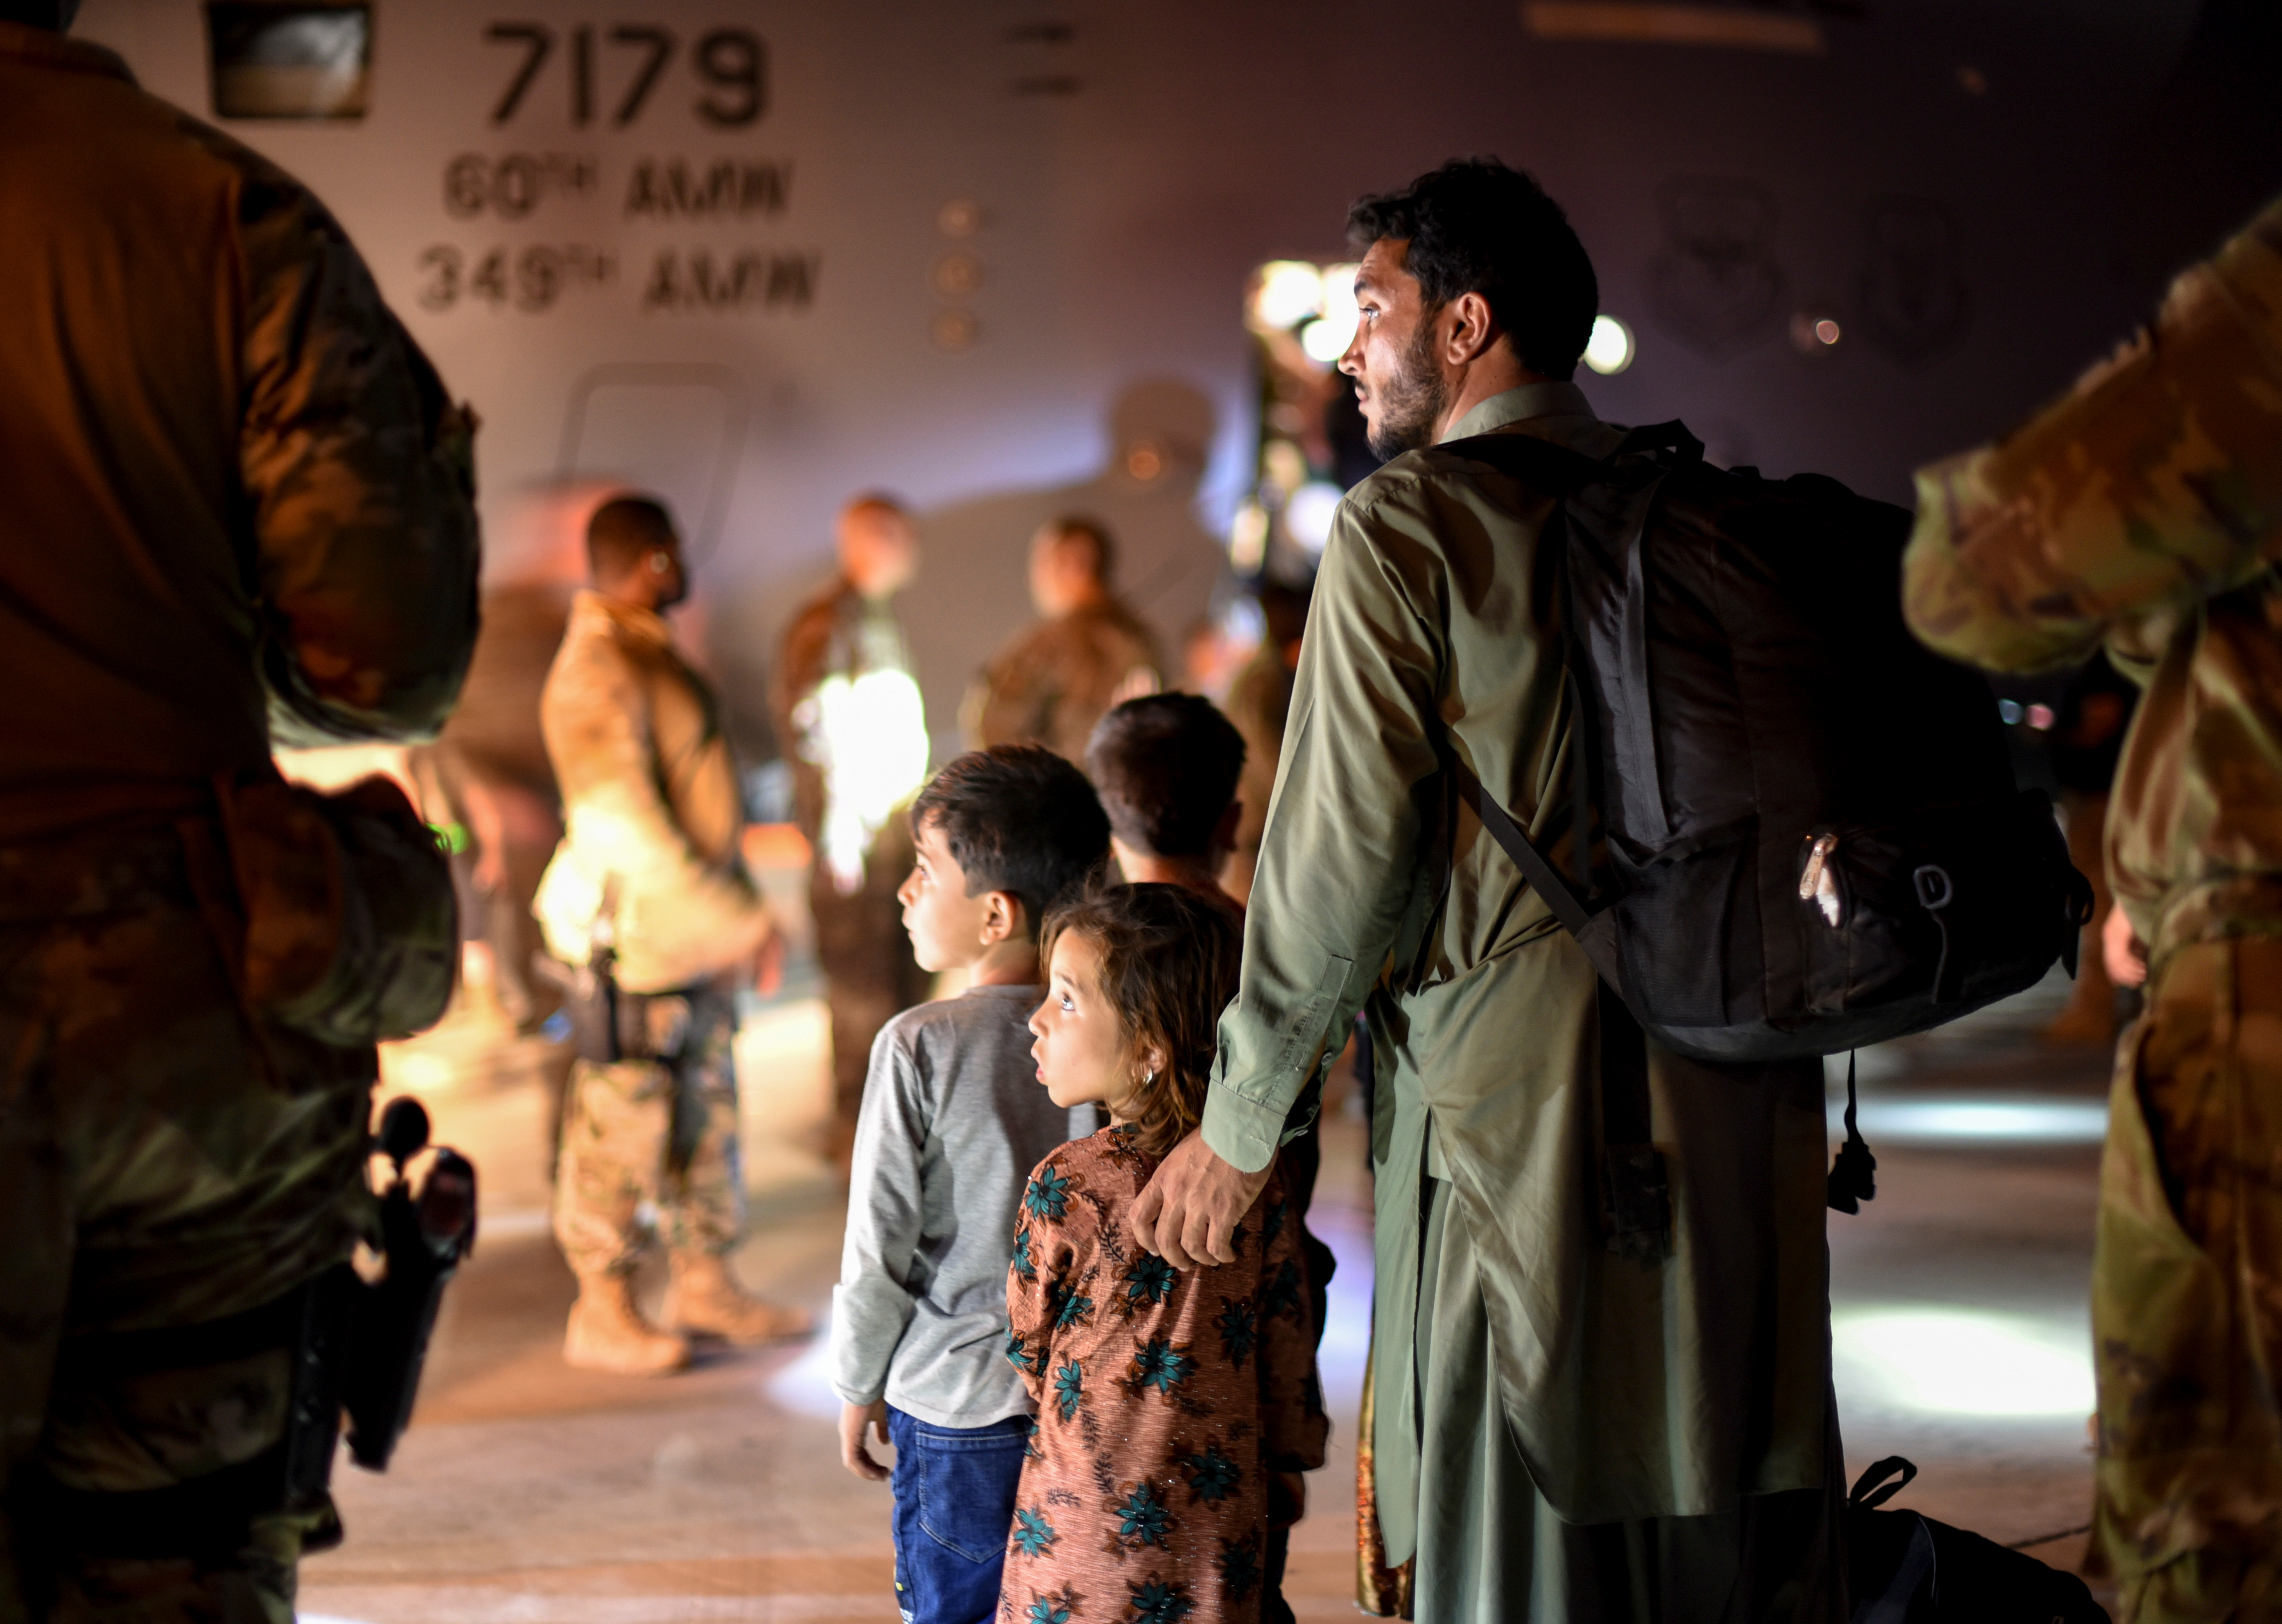 A father and children evacuees from Afghanistan leave a U.S. C-17 Globemaster transport plane after arriving at Ali Al Salem Air Base, Kuwait, August 24, 2021.  U.S. Air Force/Staff Sgt. Ryan Brooks/Handout via REUTERS.